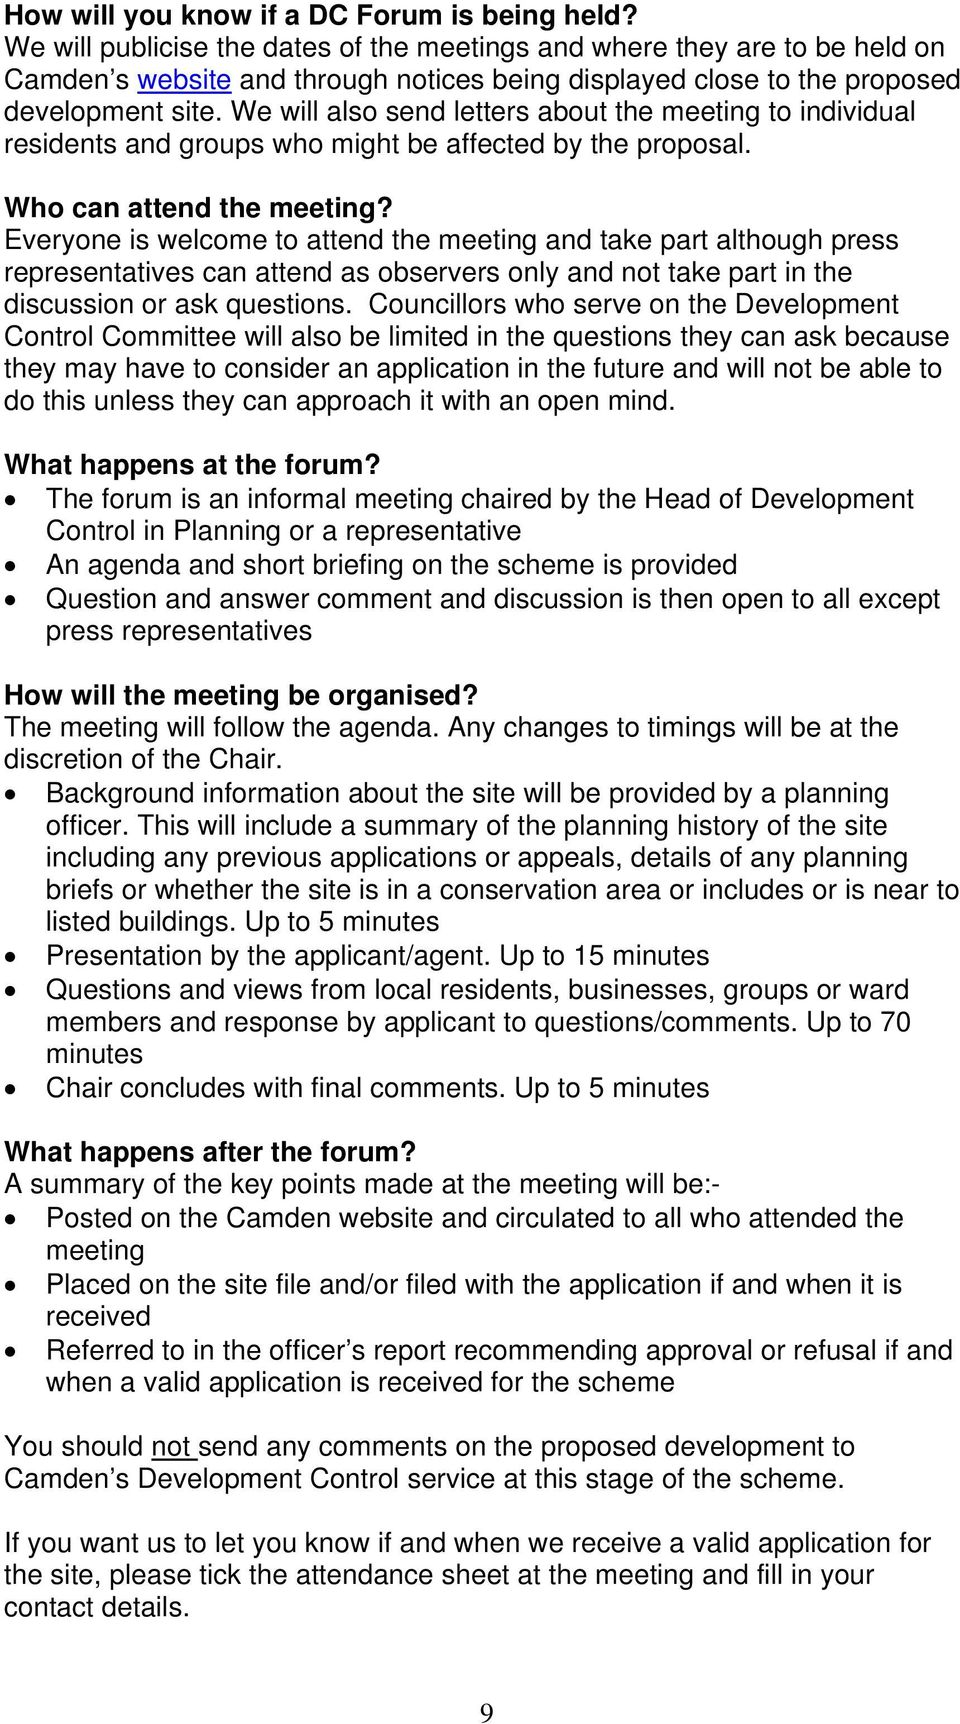 We will also send letters about the meeting to individual residents and groups who might be affected by the proposal. Who can attend the meeting?